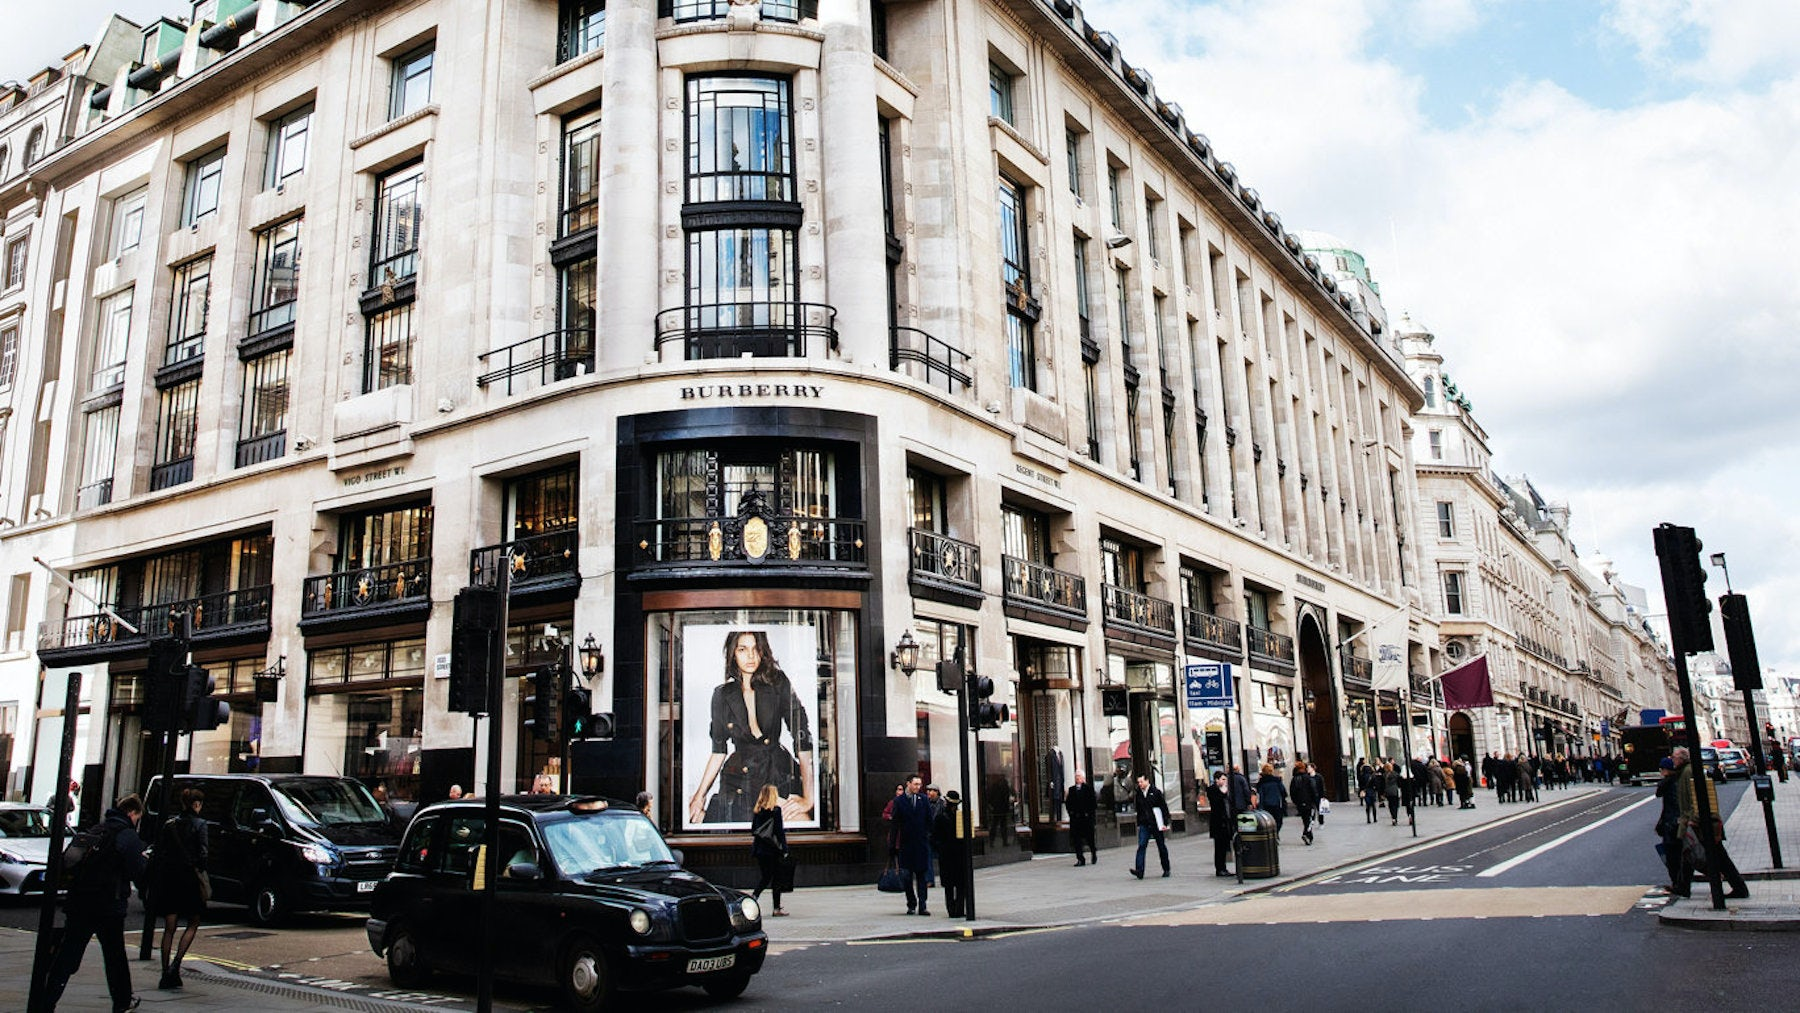 Burberry's London flagship store at 121 Regent Street | Source: Burberry